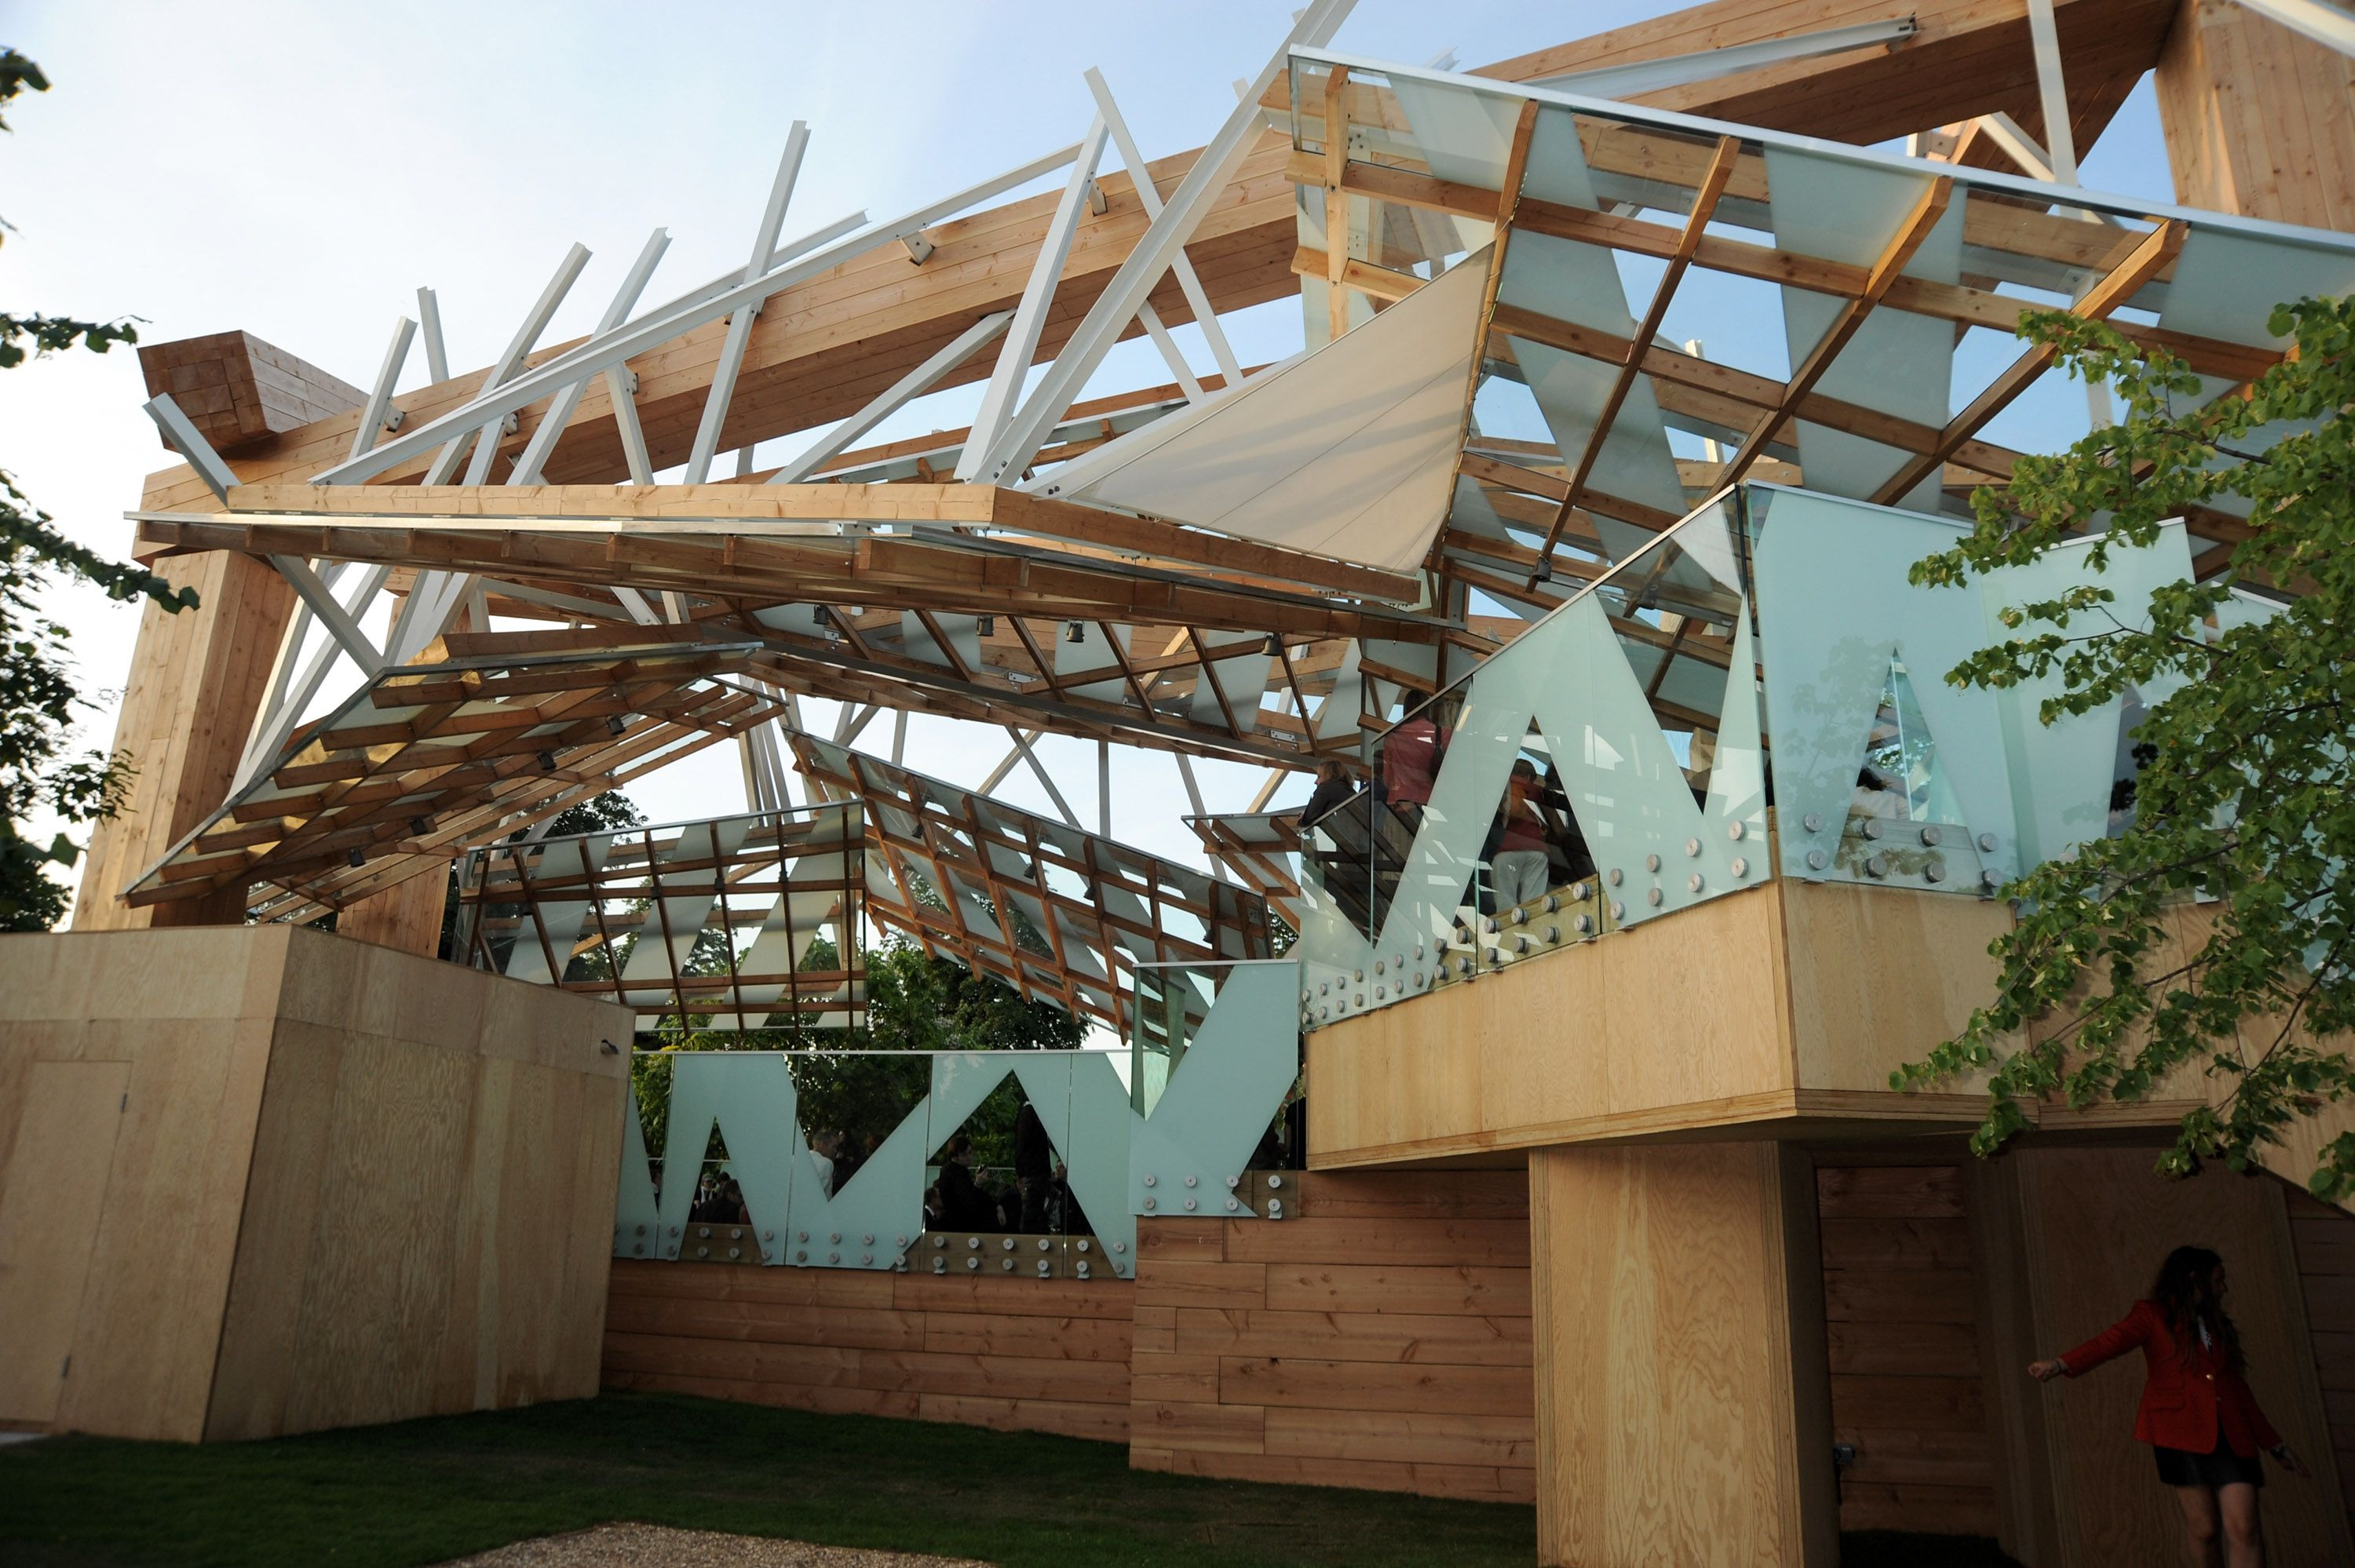 Serpentine Gallery Pavilion in London, 2008, by Frank Gehry